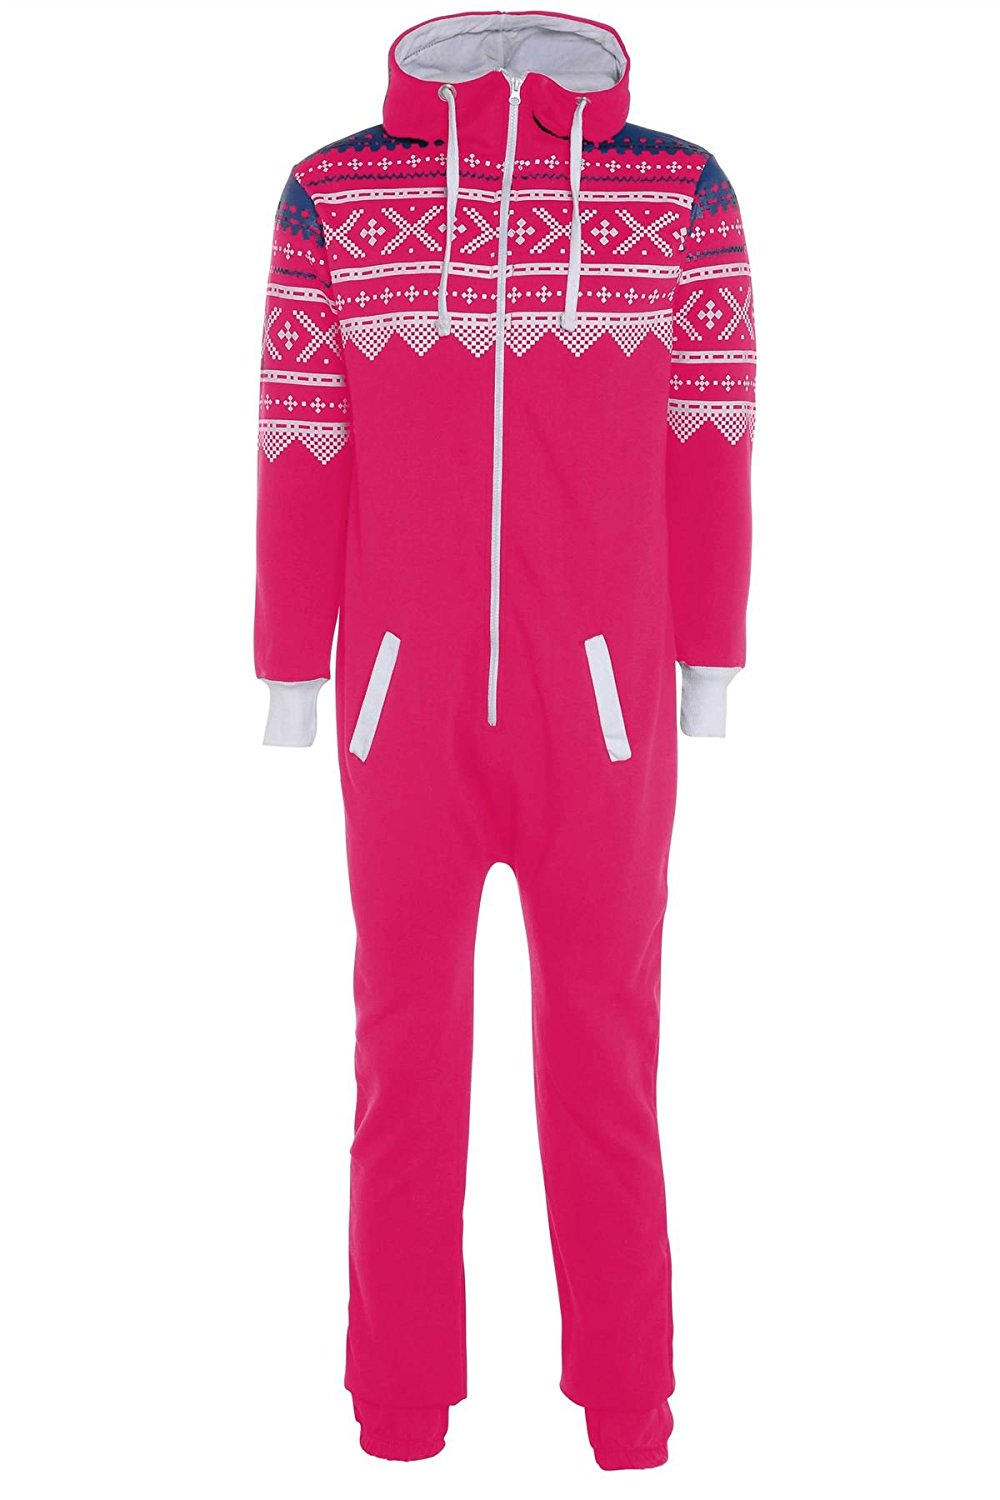 5f3bd7fd2121 Get Quotations · Janisramone New Womens Hooded Aztec Print Fleece All In One  Unisex Jumpsuit Onesie Playsuit